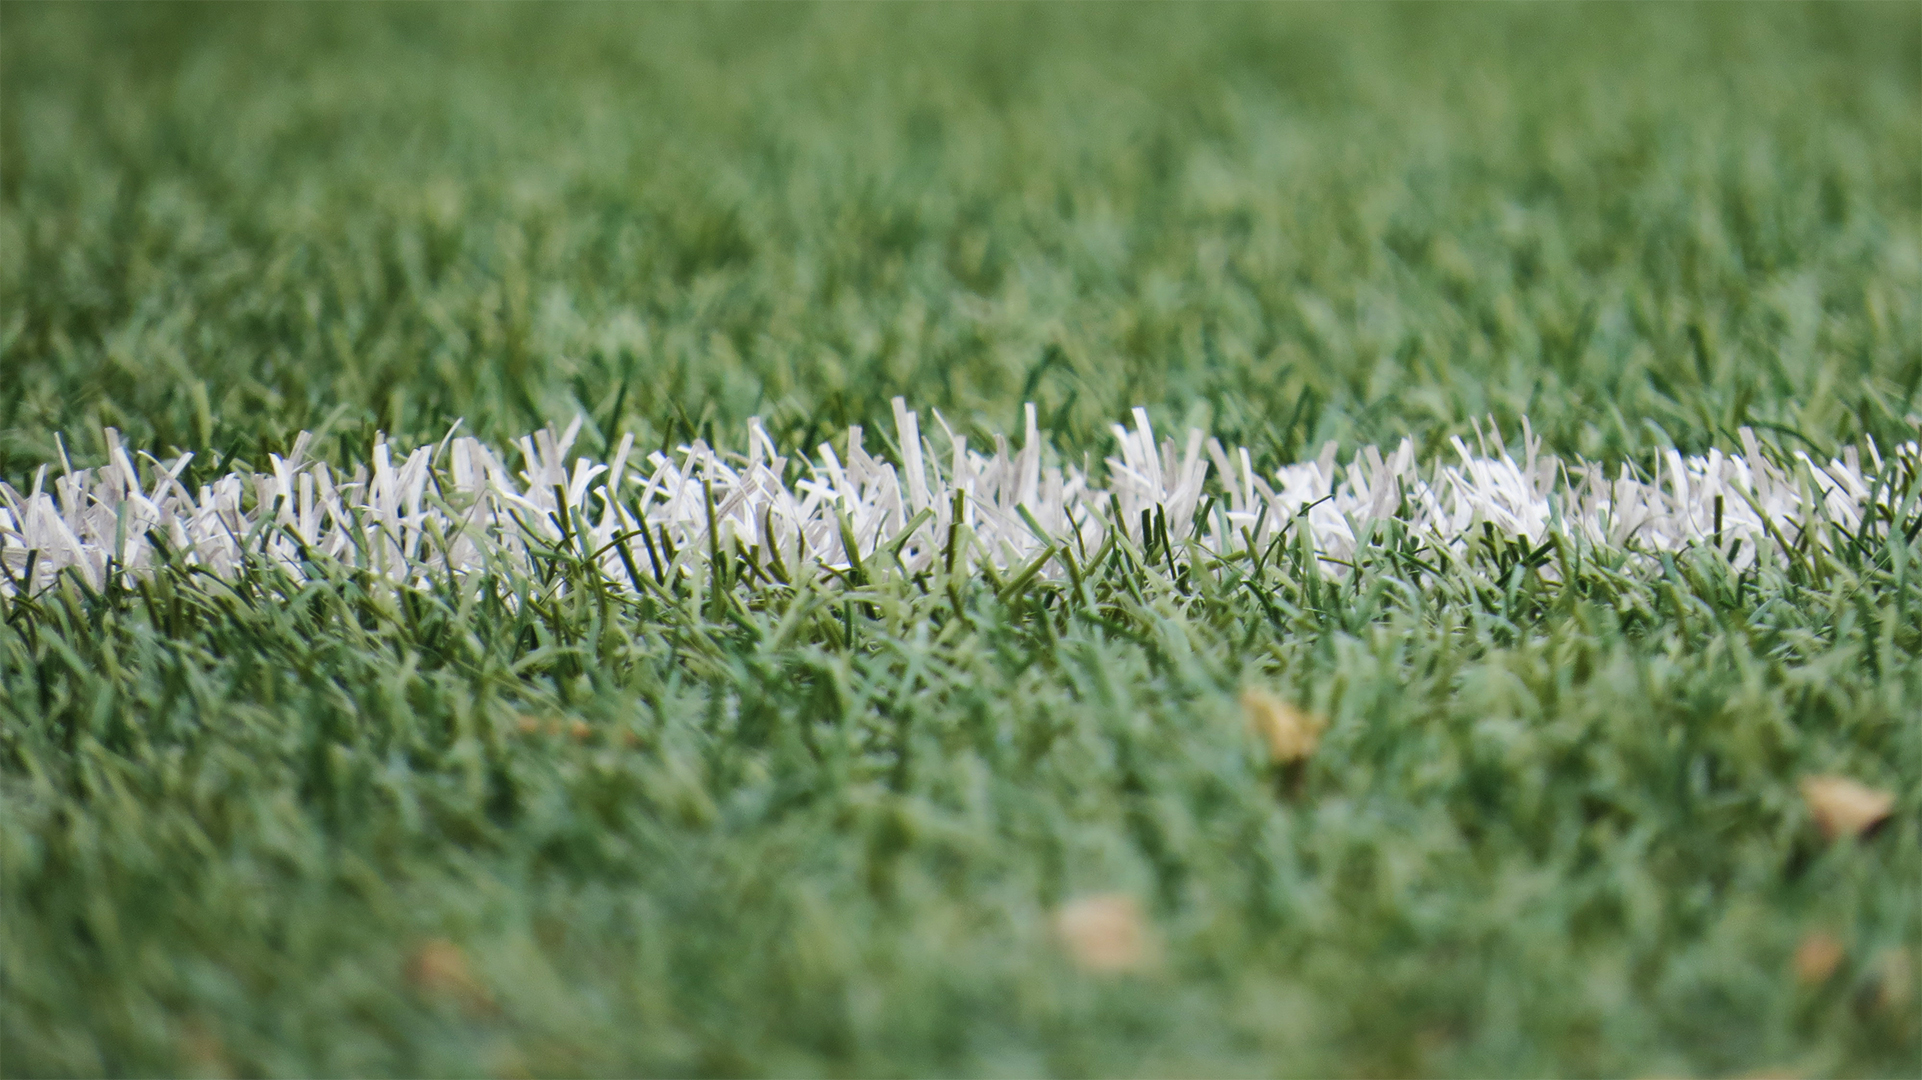 Ground-level view of a grass field and white painted stripe